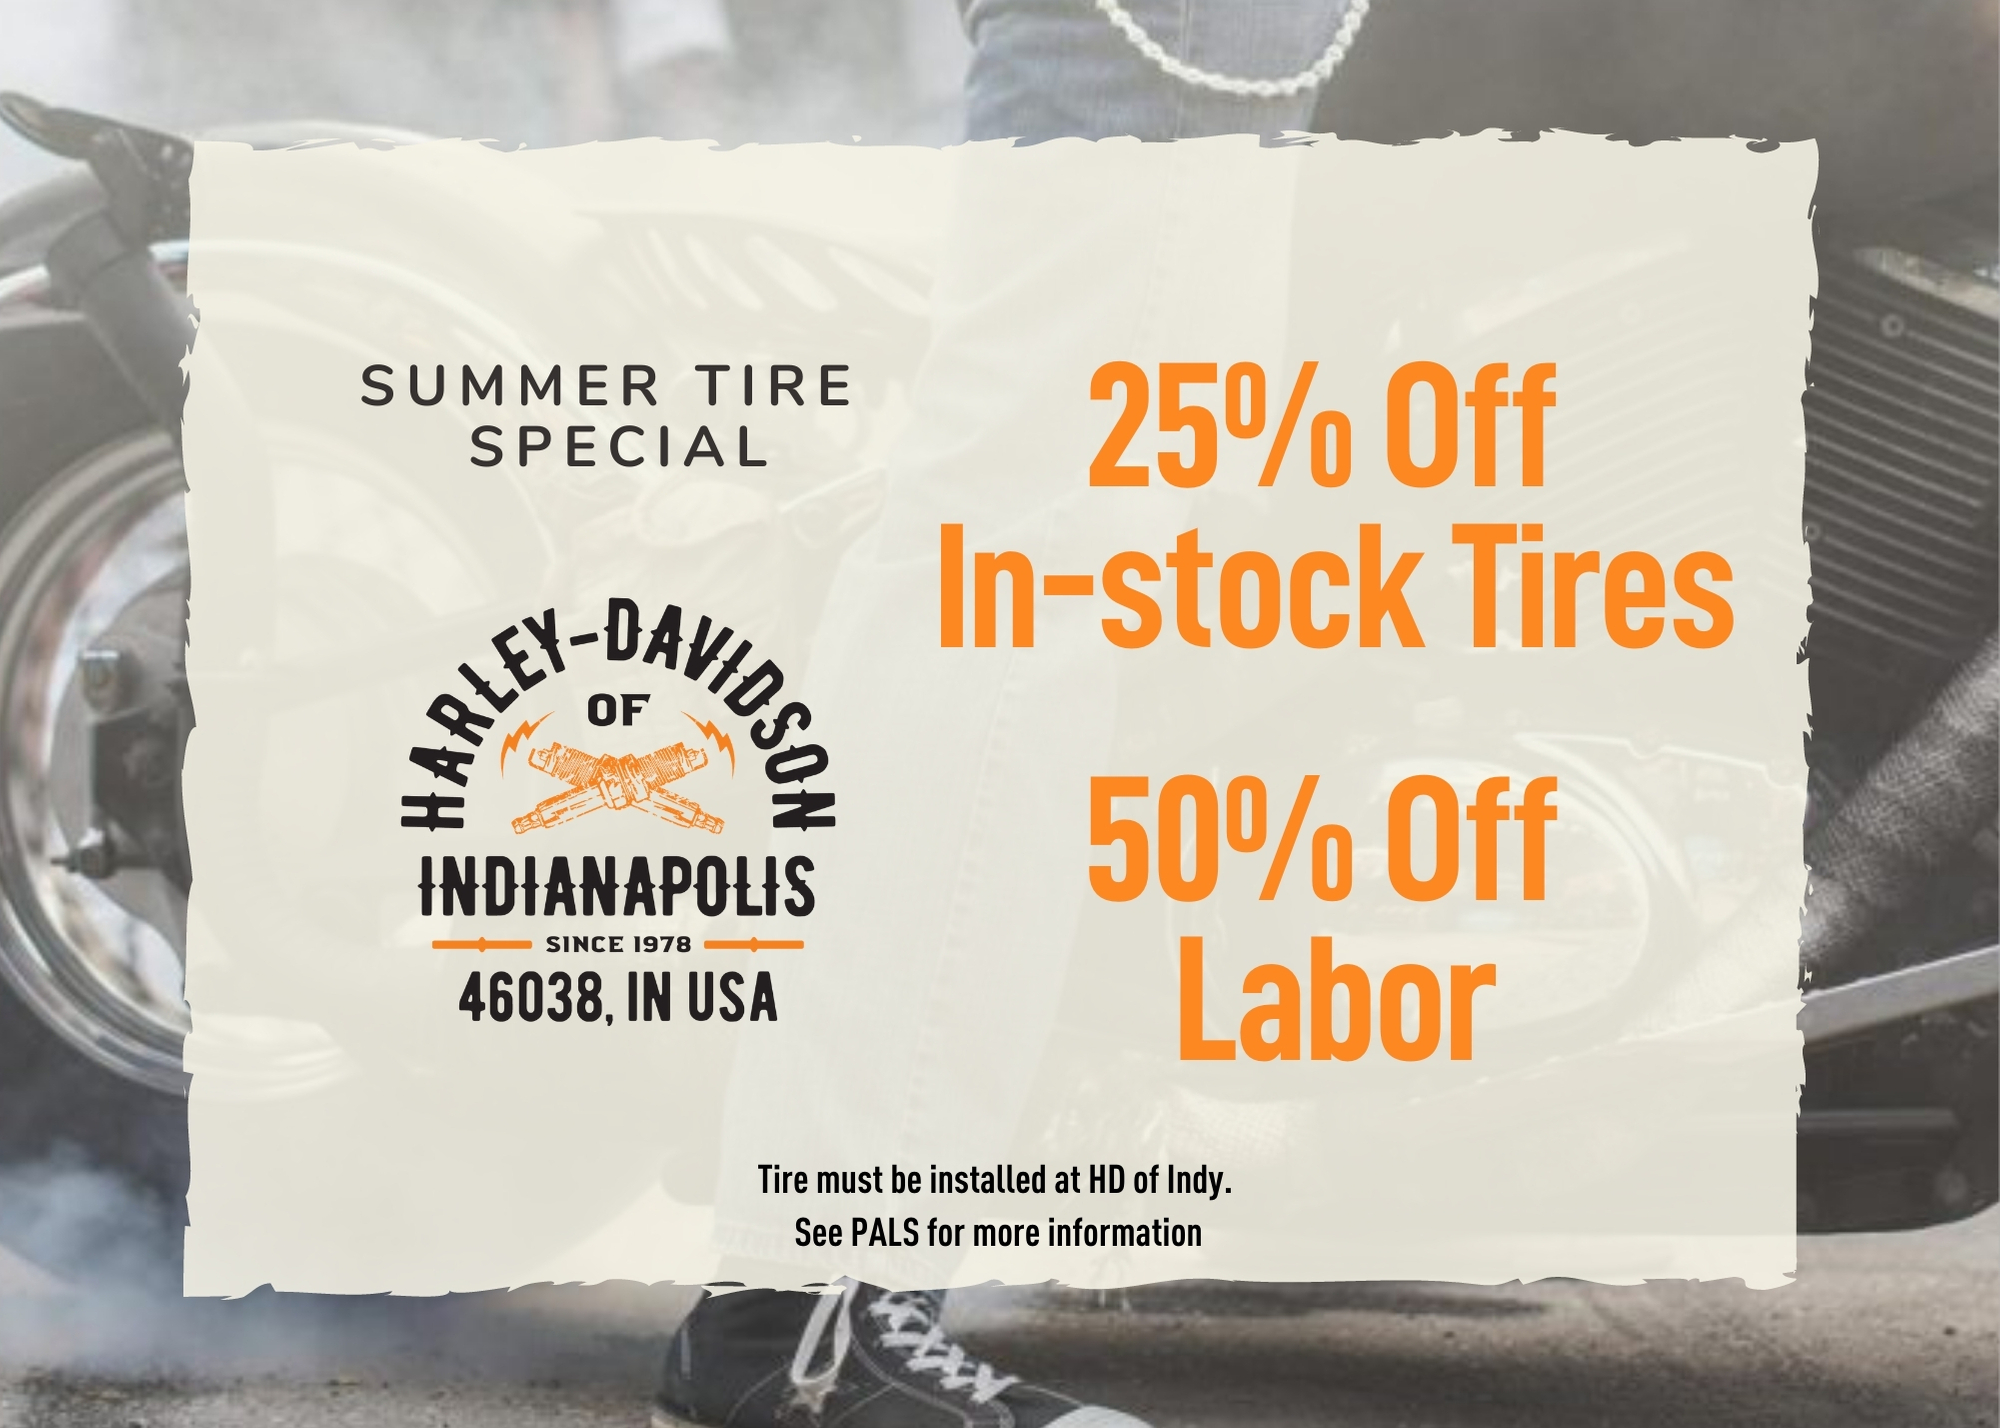 Discount Tires and Installation at Harley-Davidson of Indianapolis | Motorcycle Tires | Dunlop